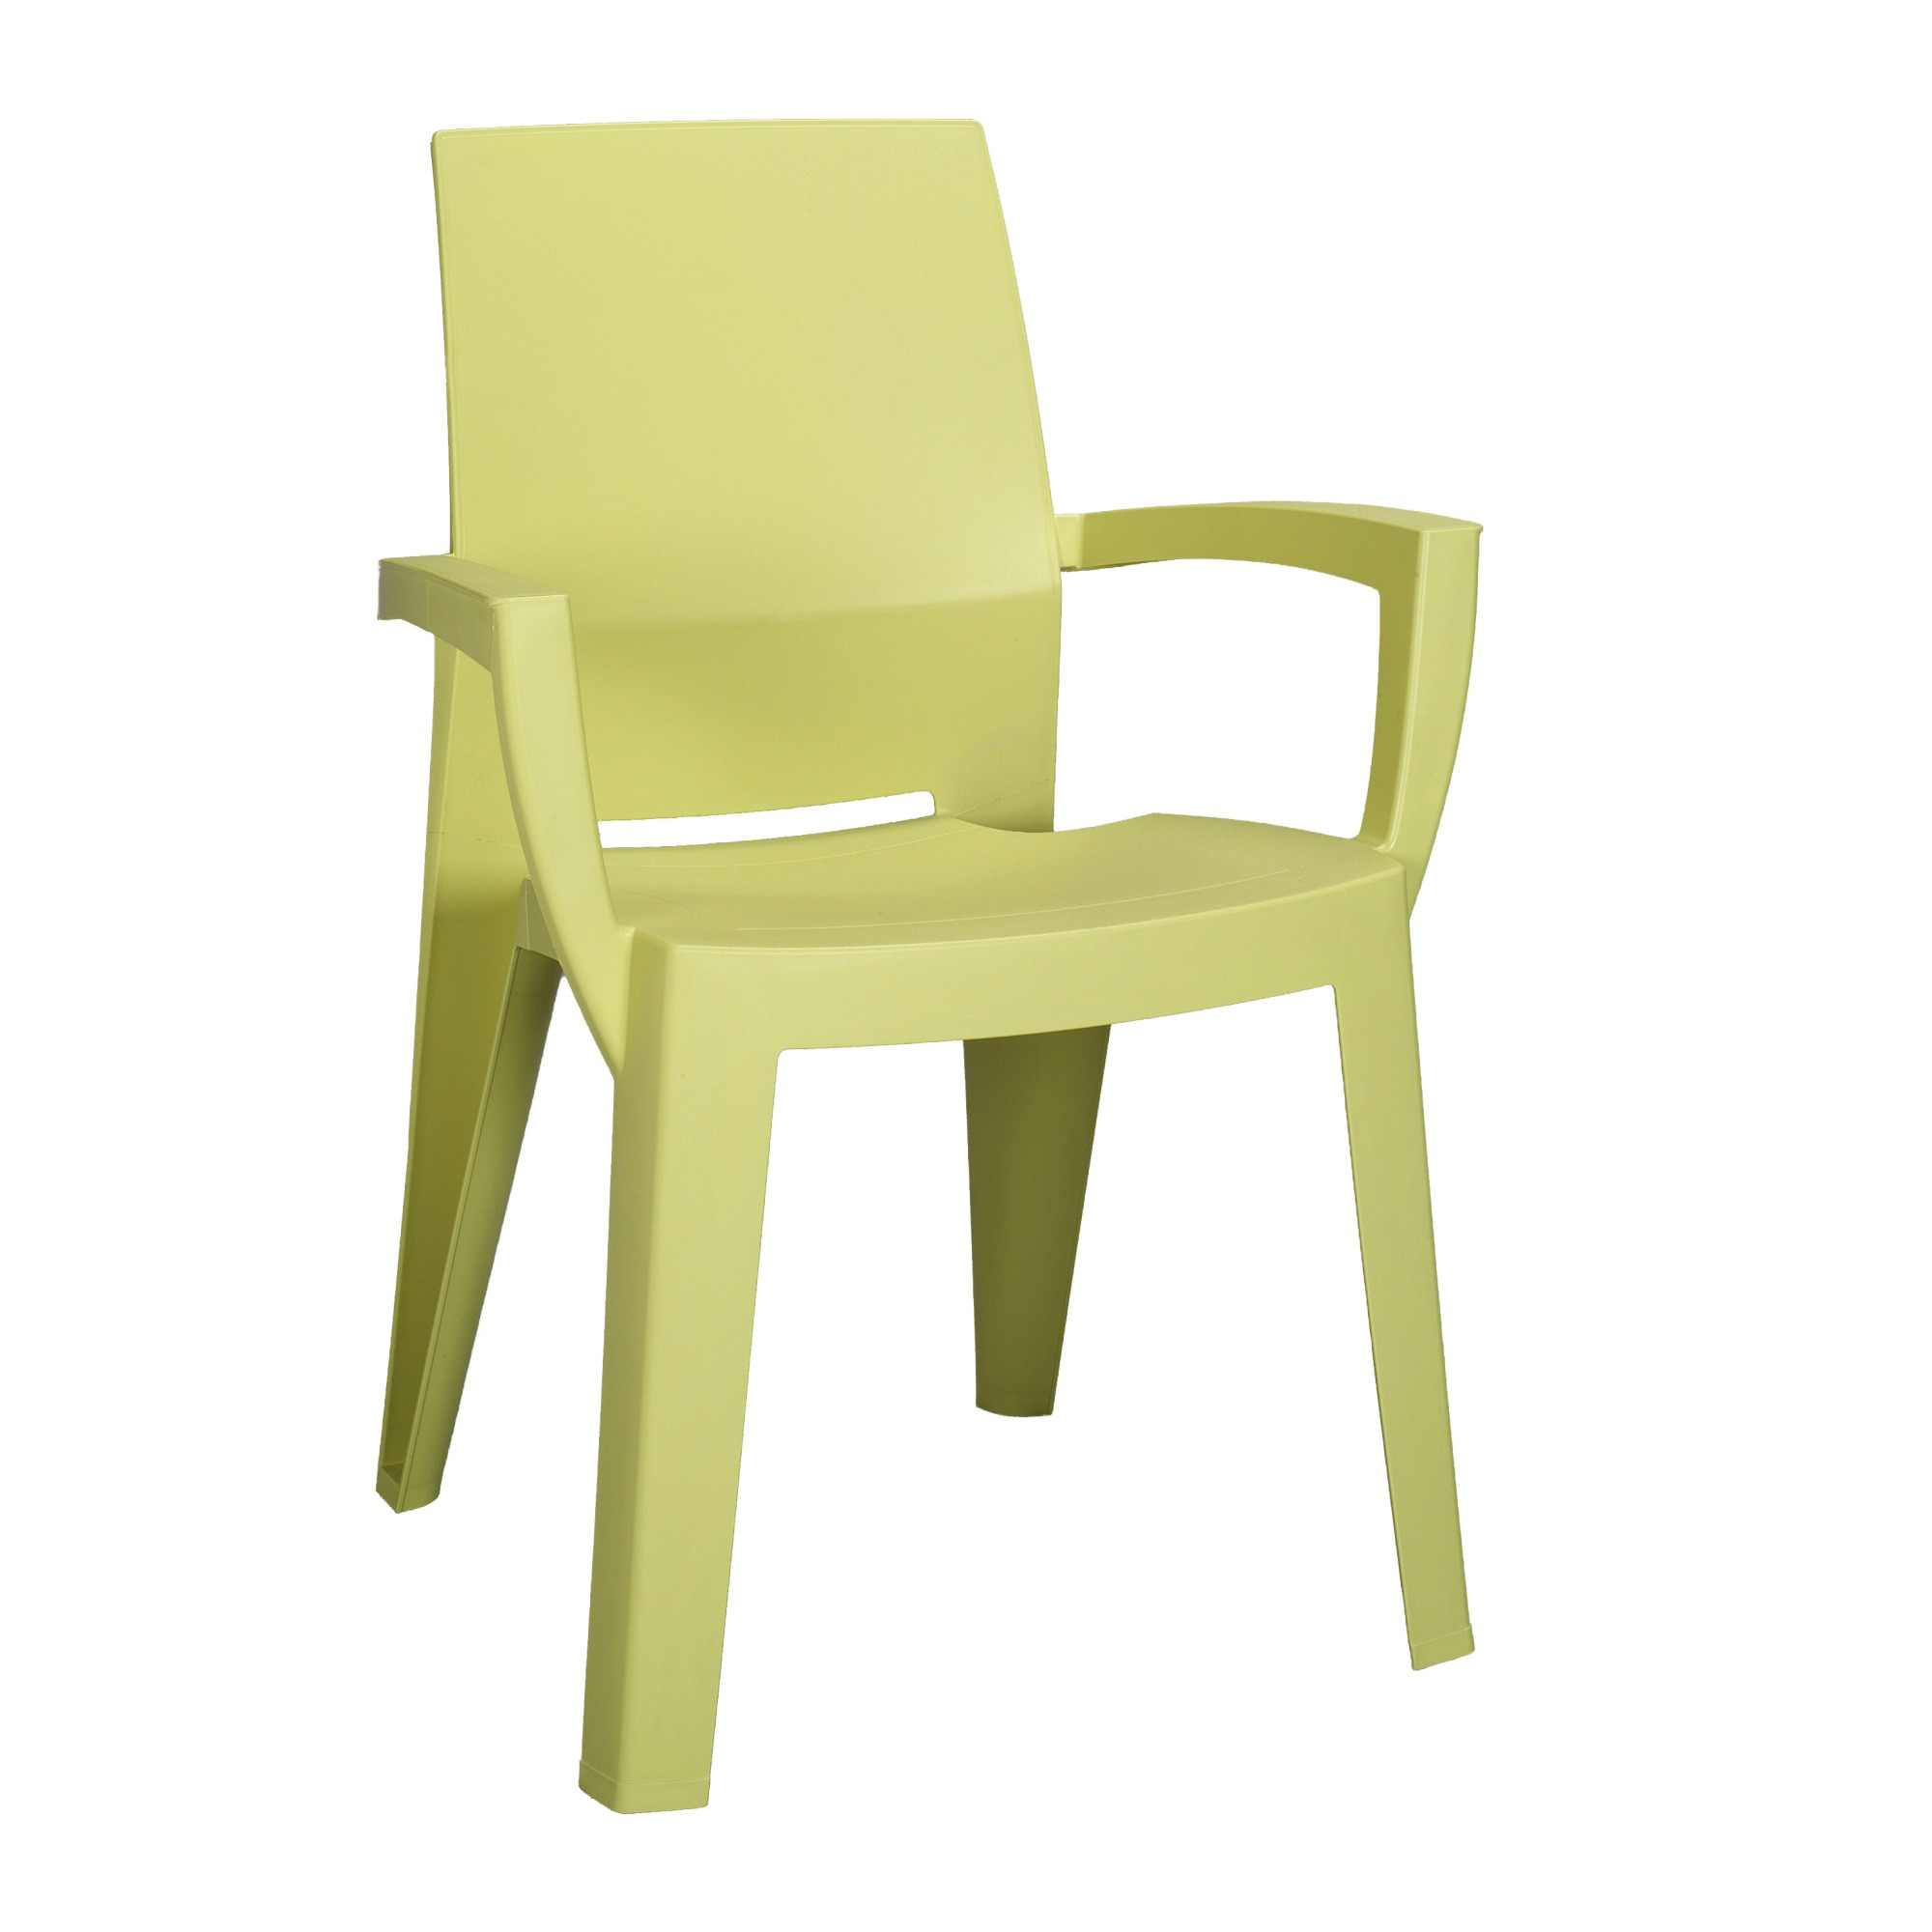 Meuble De Jardin Allibert Chaise Lago Allibert Lime Chaises And Fauteuils De Jardin